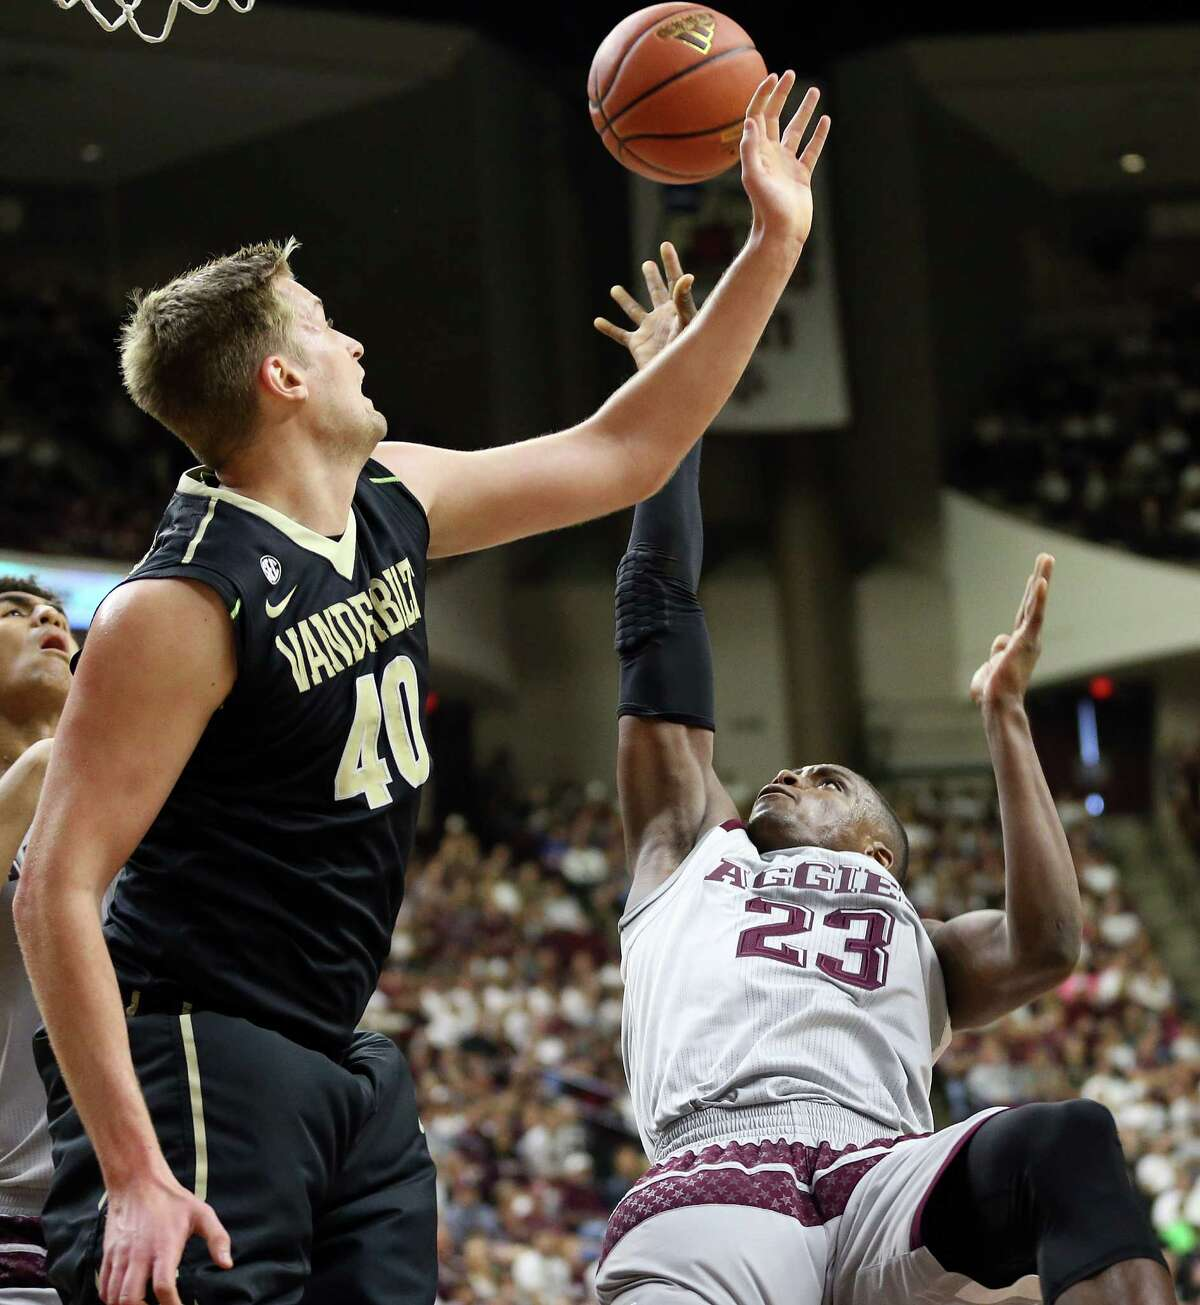 Texas A&M's Danuel House (23) is fouled by Vanderbilt's Josh Henderson (40) while making a shot during the first half of an NCAA college basketball game, Saturday, March 5, 2016, in College Station, Texas.